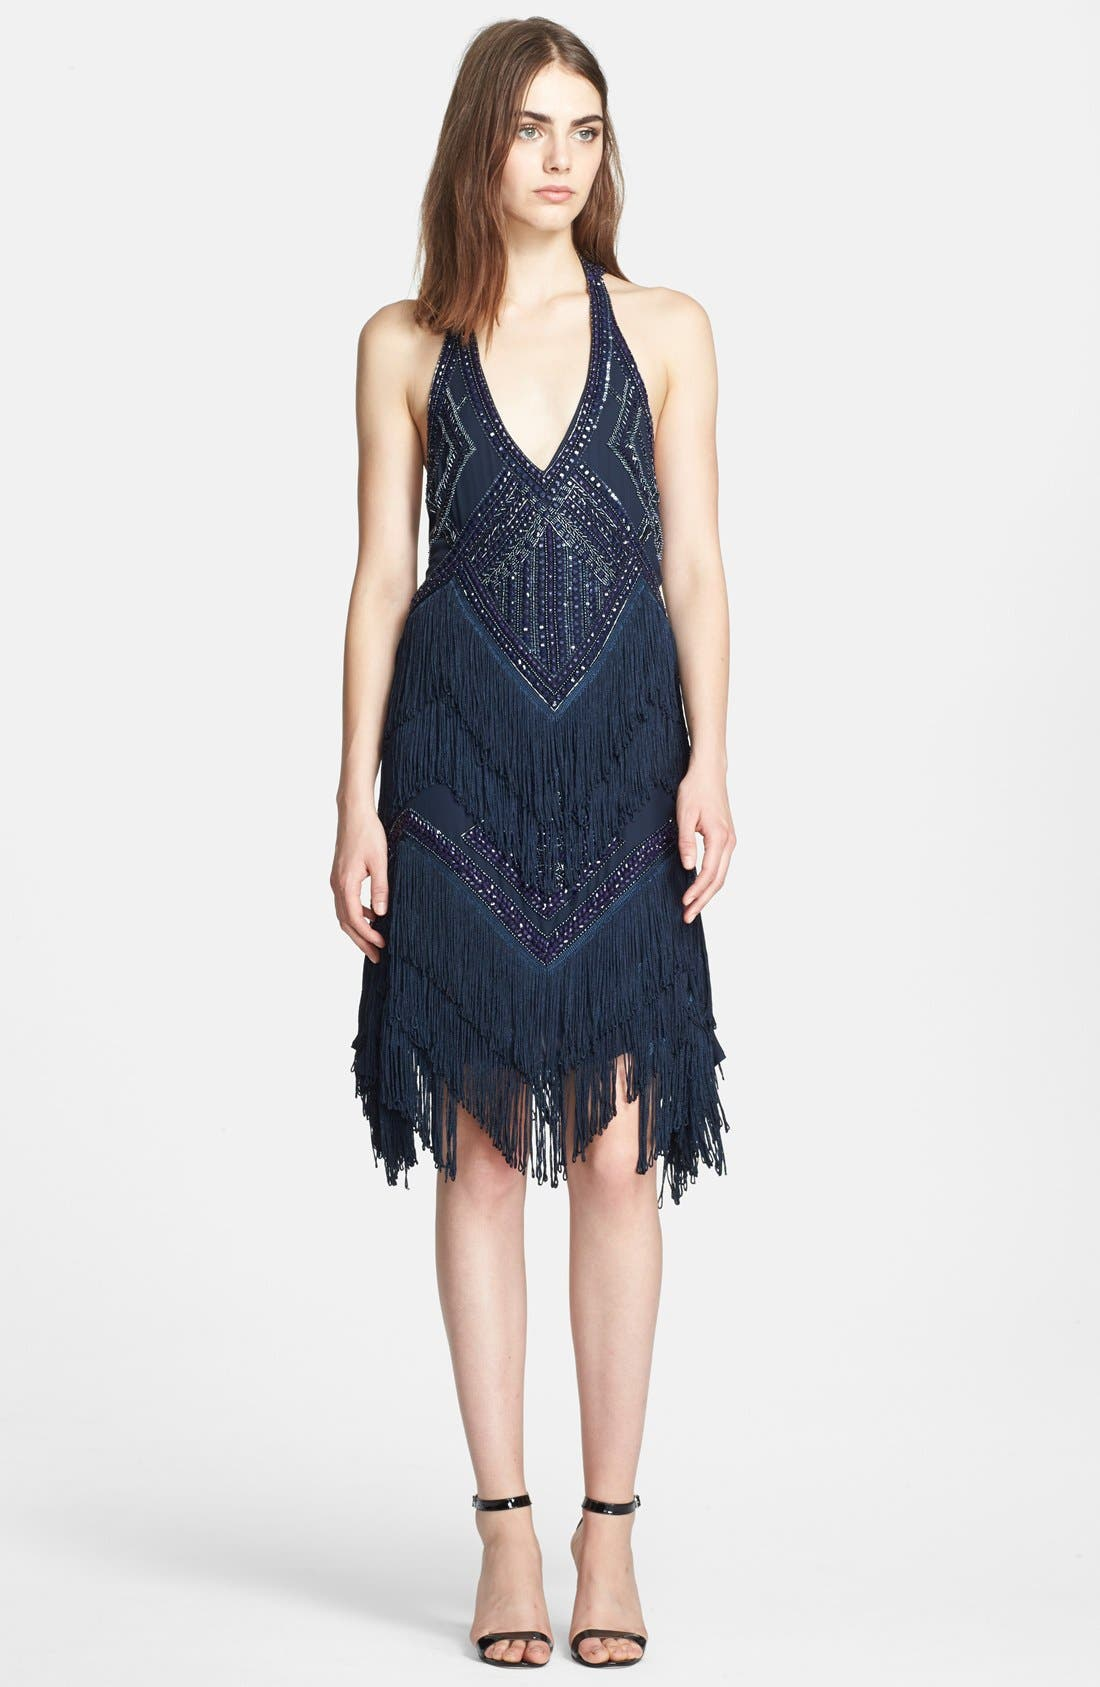 Alternate Image 1 Selected - Haute Hippie Bead Embellished T-Back Silk Dress with Fringe Skirt